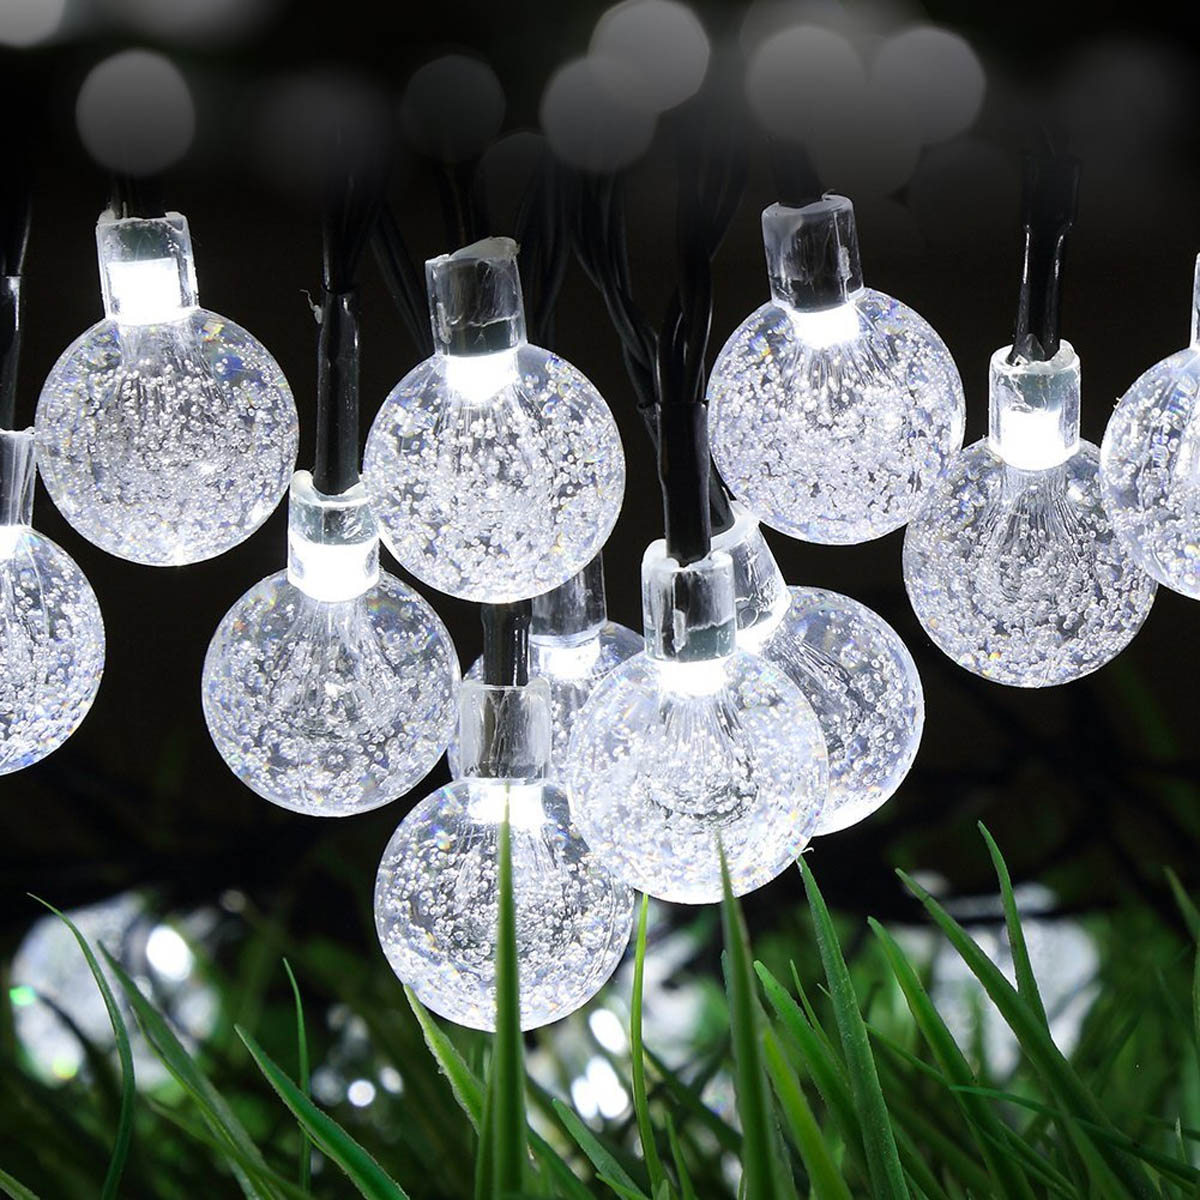 Jiawen Waterproof IP65 4.5M 30leds Solar Powered LED String lights for Garden,Yard,Home, and Holiday Decorations string lights